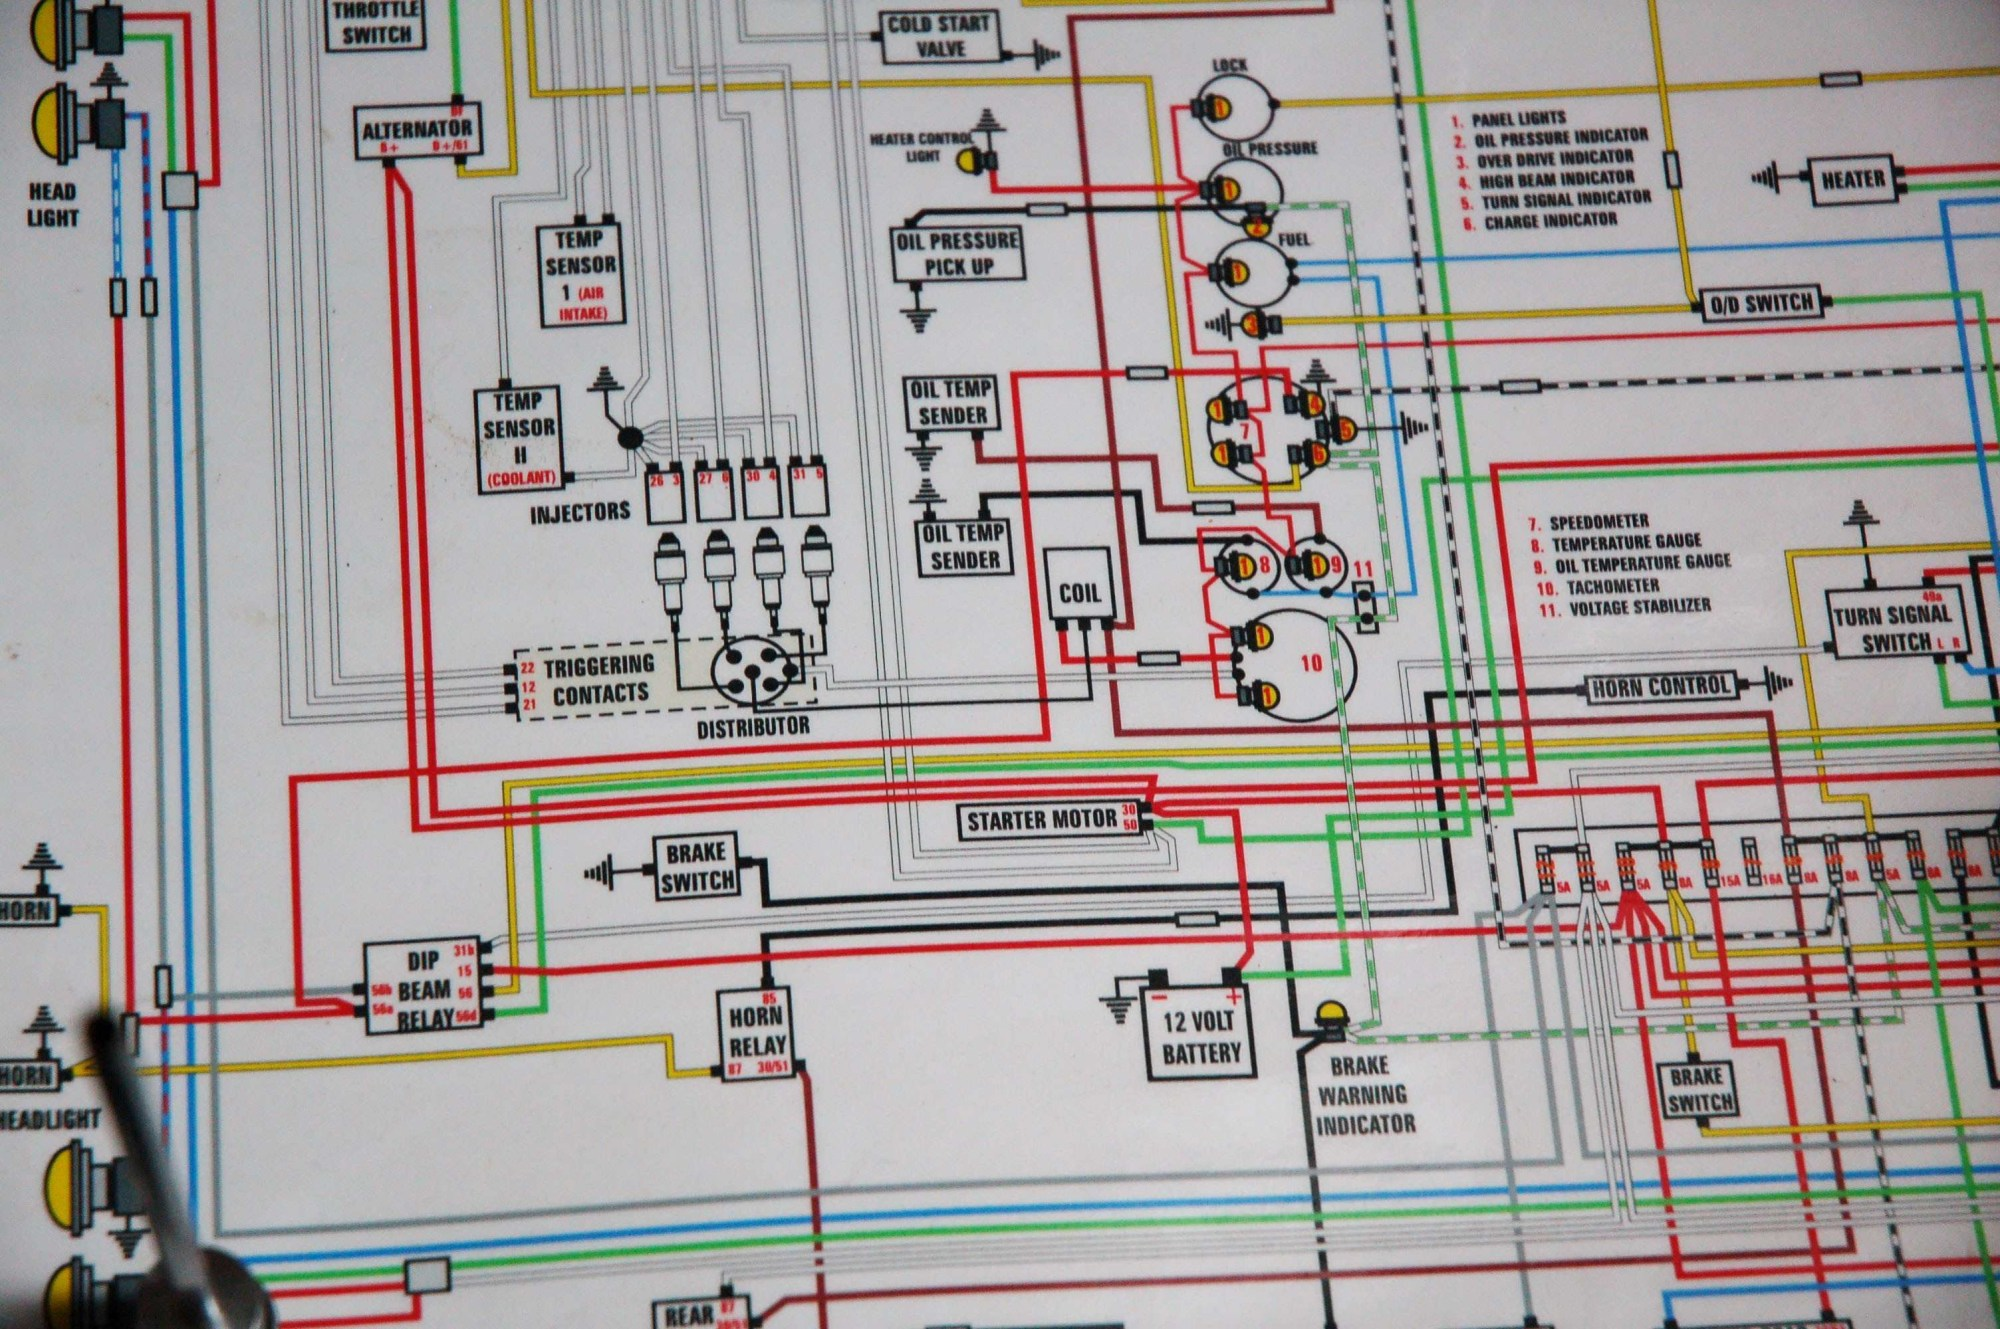 hight resolution of painless wiring harness diagram for a 5 switch panel wiring painless switch box wiring diagram wiring